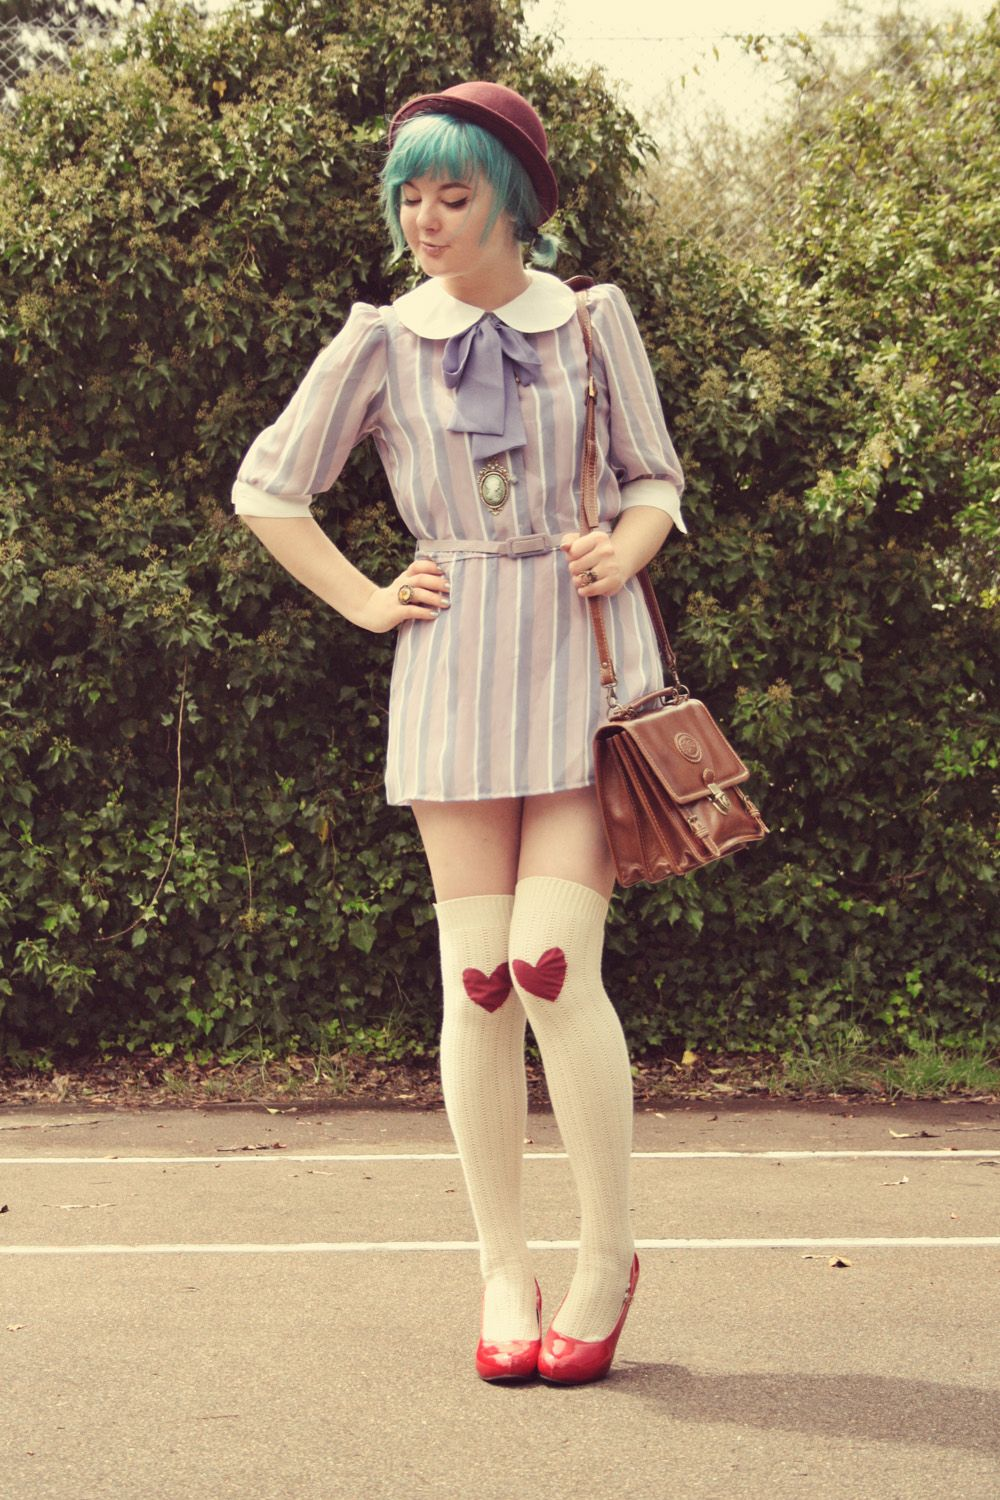 Very Cute! Love the dress and socks!The Pineneedle Collective: DIY ...